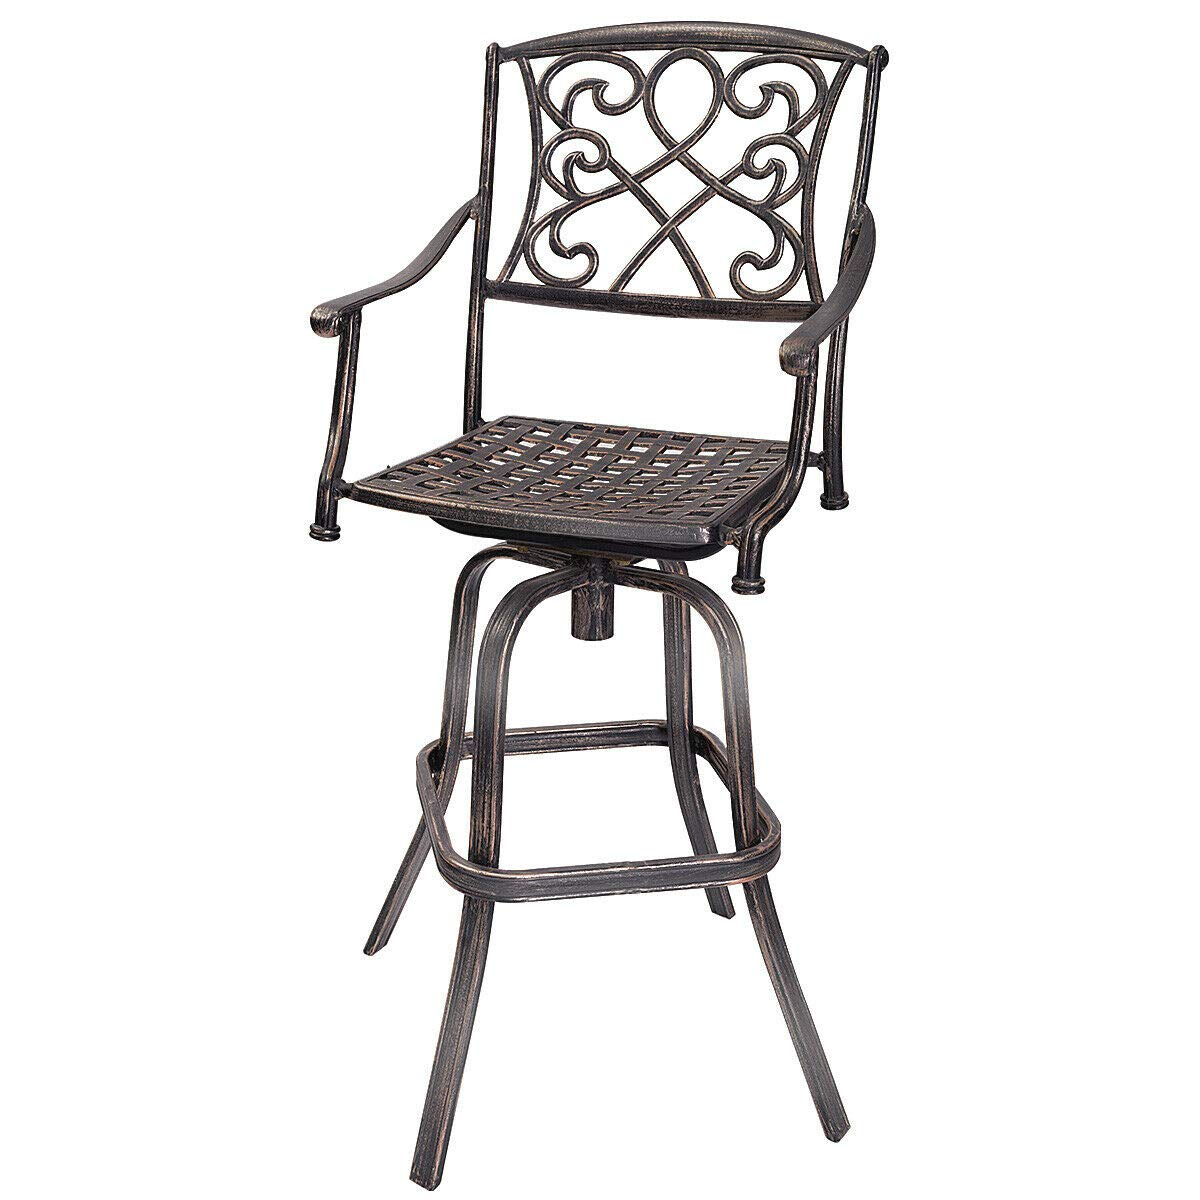 COSTWAY Bar Stool, Cast Aluminum Vintage Retro Design Patio Outdoor Garden Bistro Furniture Set (Copper Bar Stool) by COSTWAY